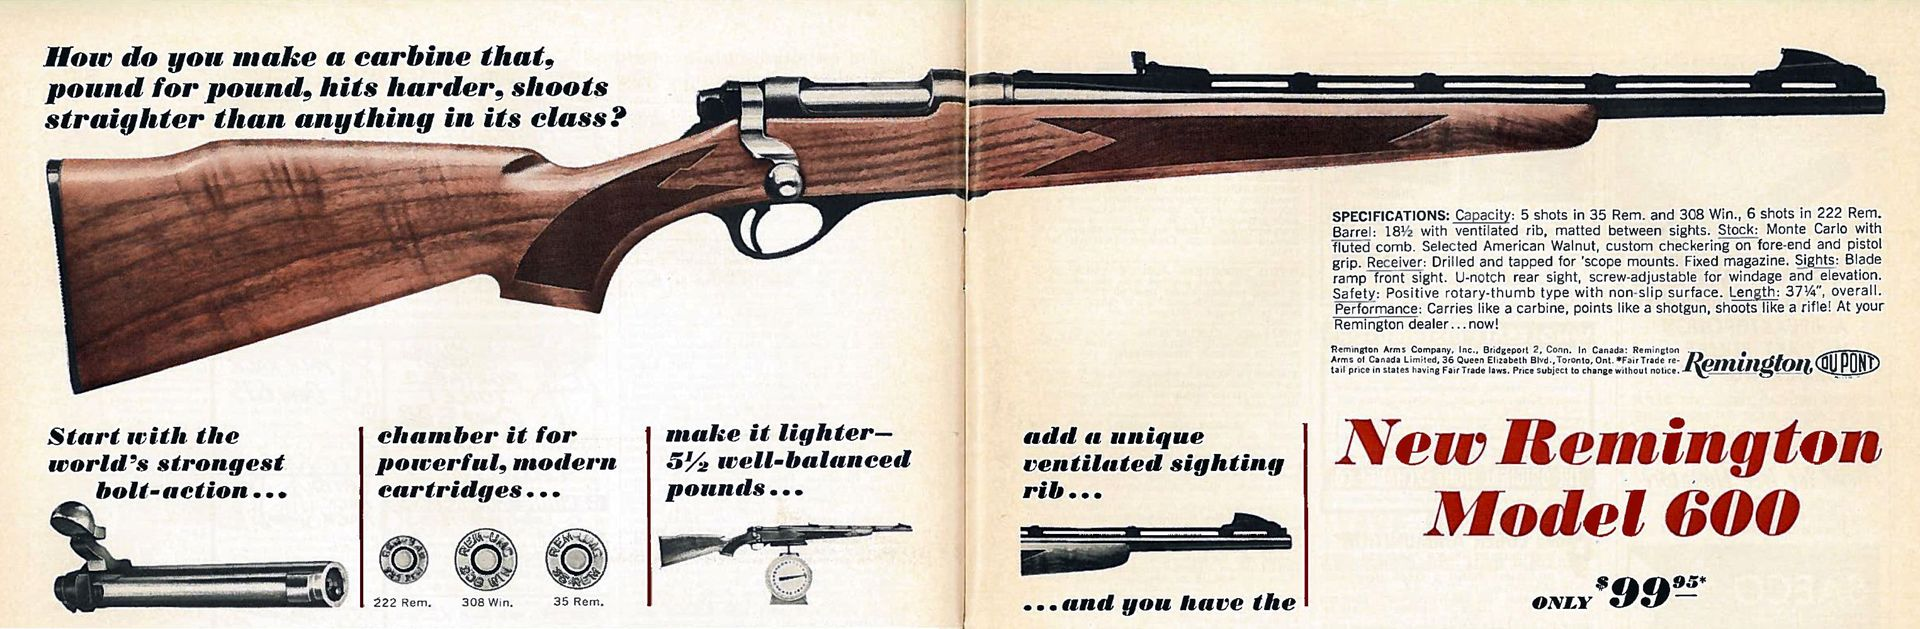 Remington Model 600